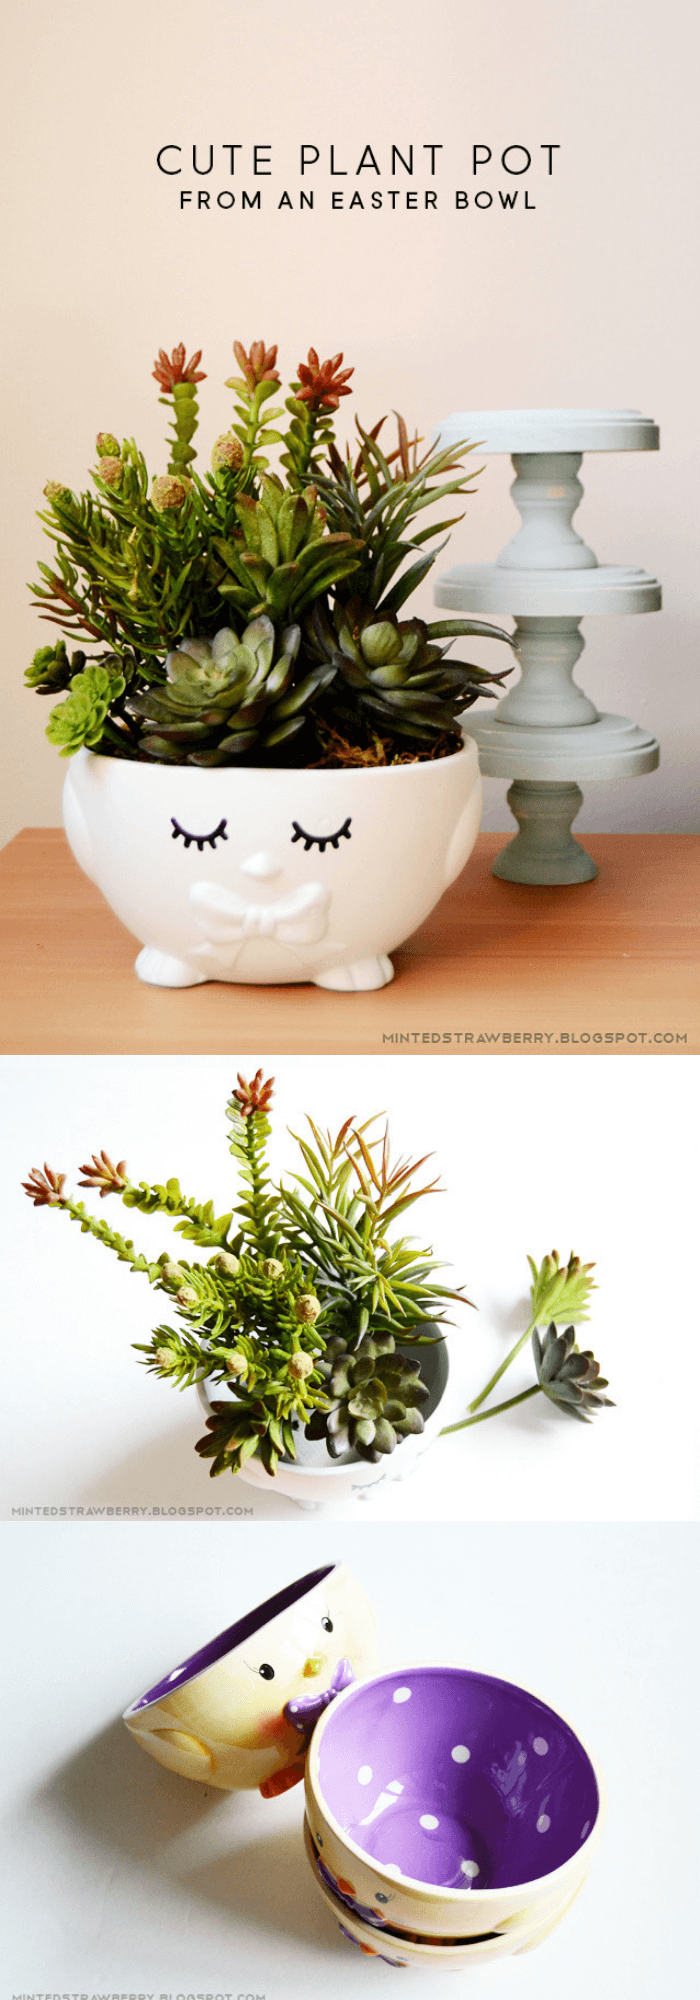 Cute plant pot from an Easter bowl